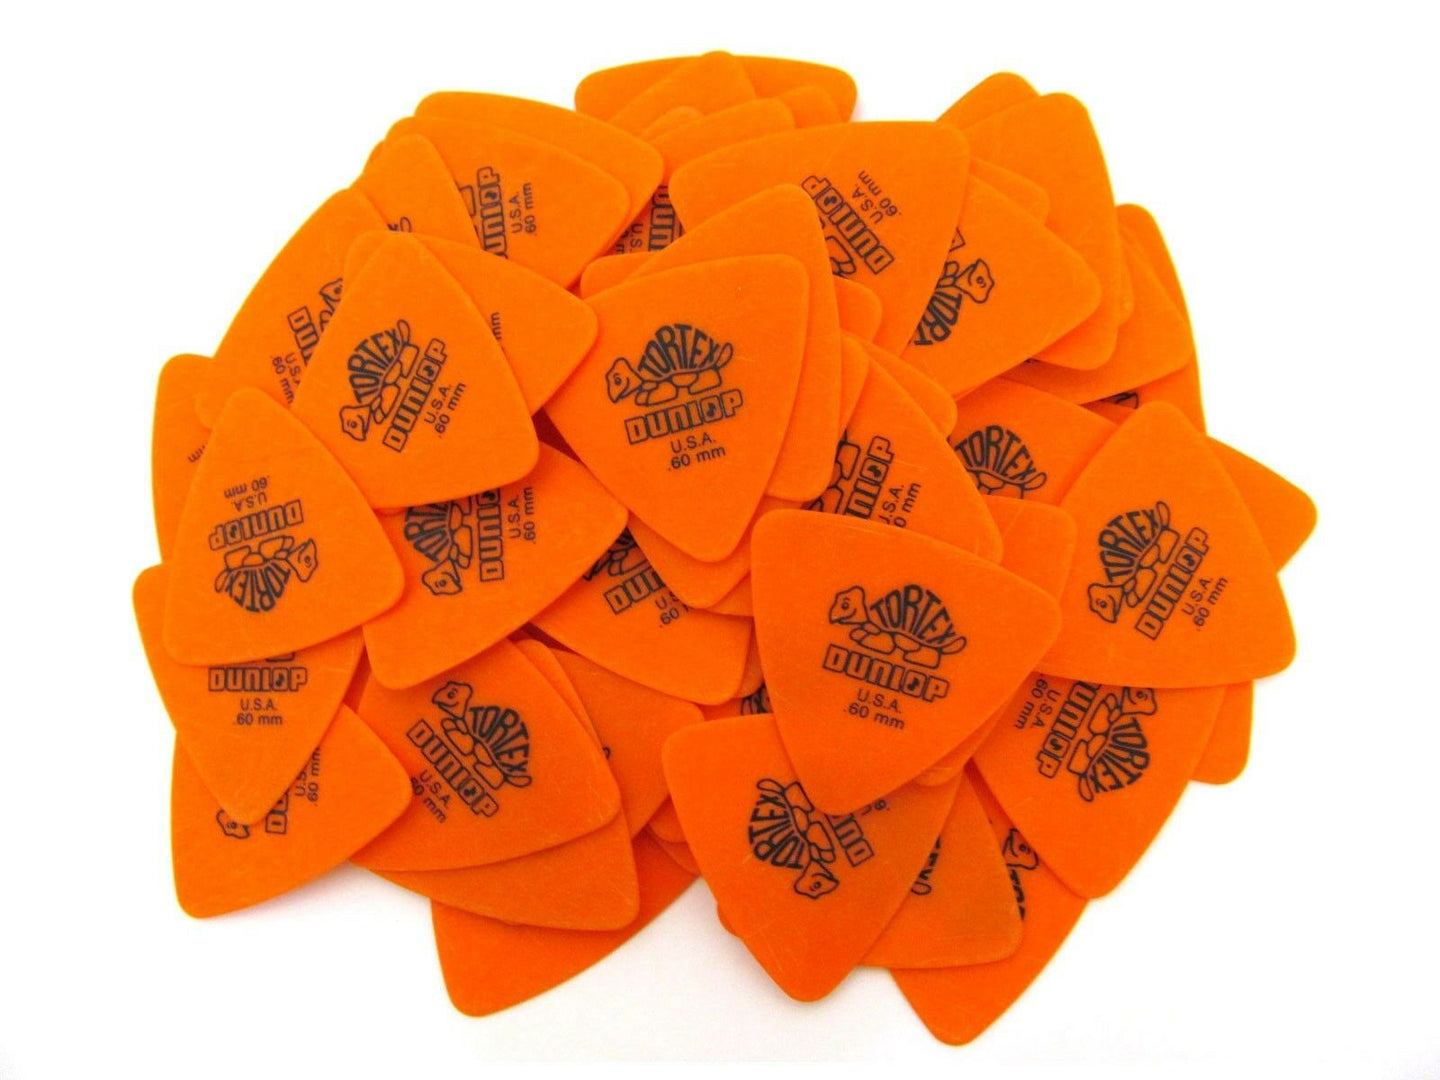 Dunlop Guitar Picks  Tortex Tri  72 Picks  .60mm  431R.60  Orange.